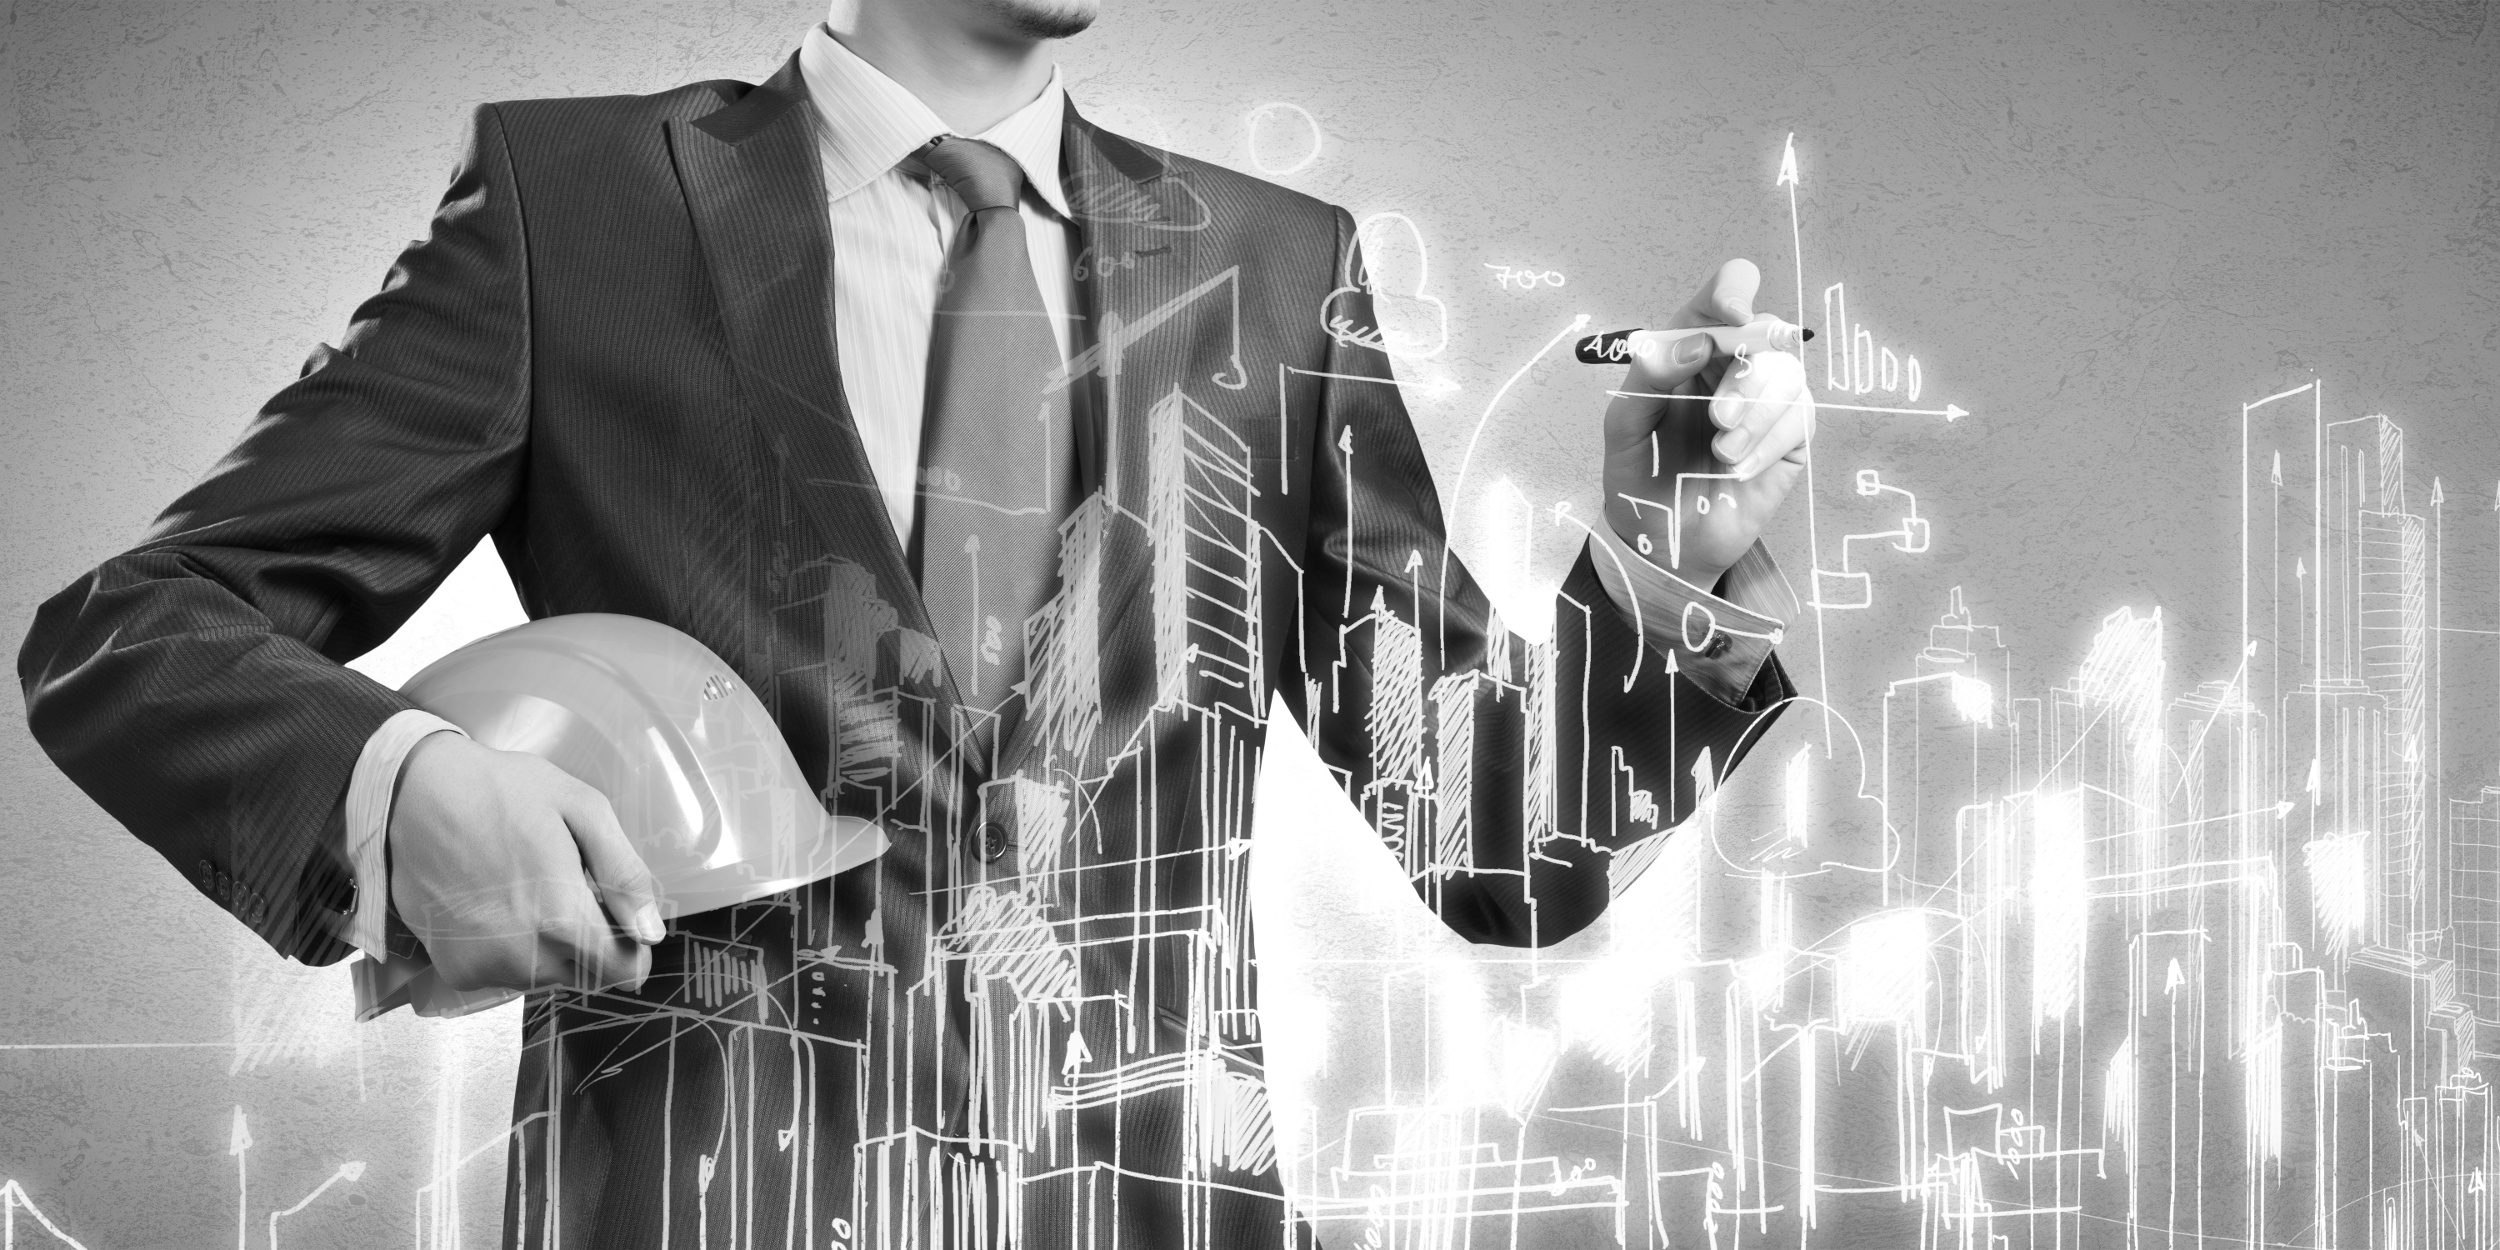 financial risks in construction The first kind of risk is financial—the project exceeds its budget and endangers the financial health of the company budget overruns are not always a matter of poor construction supervision.